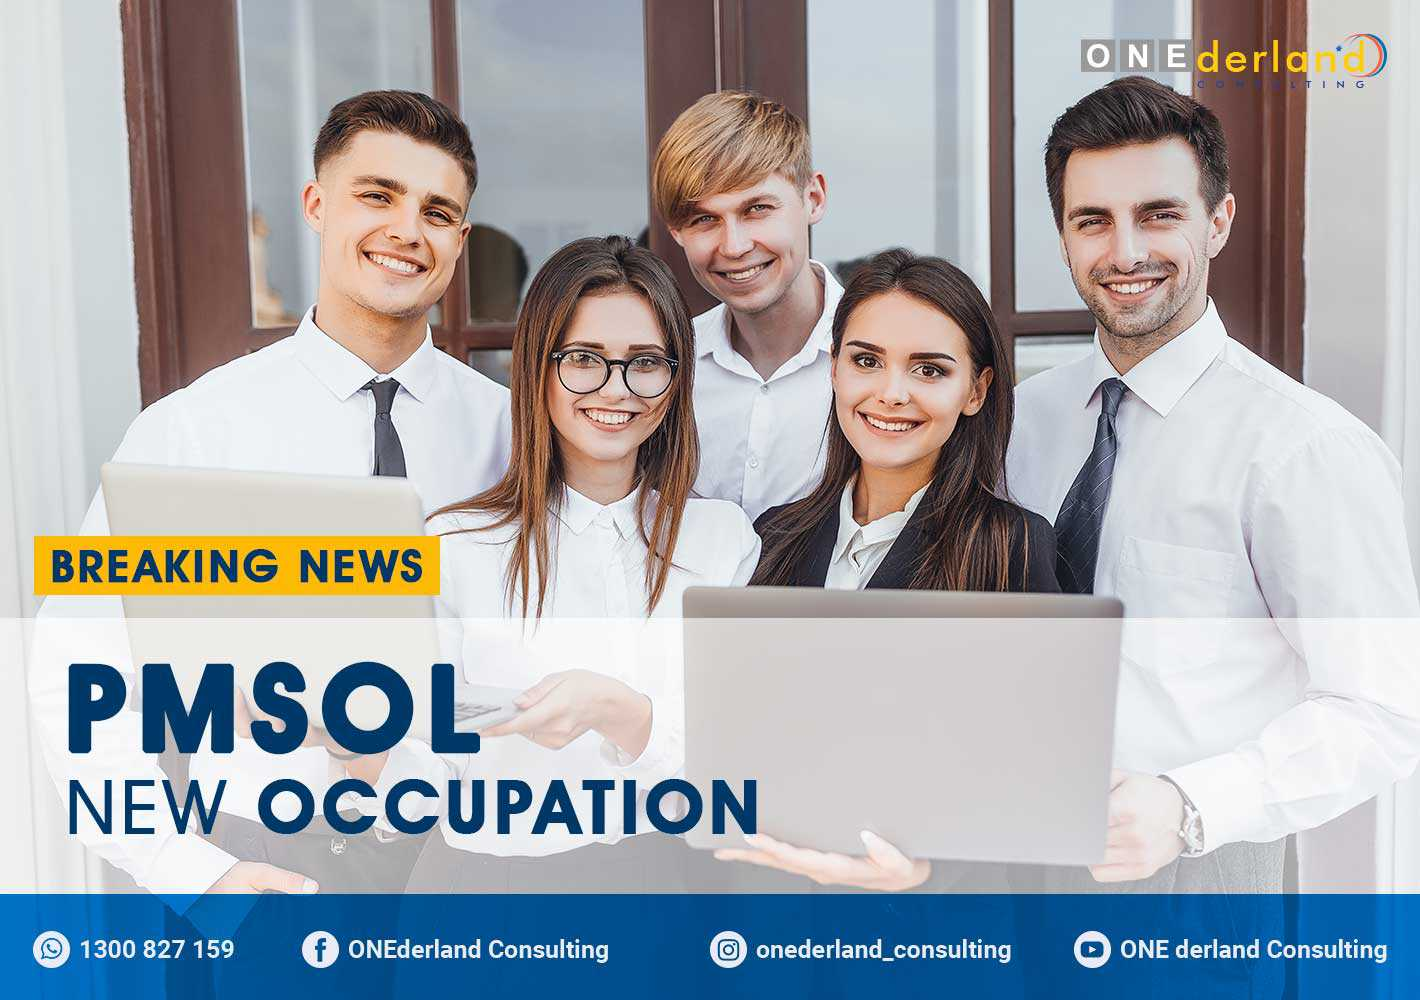 PMSOL – Priority Migration Skilled Occupation List Update New Occupation